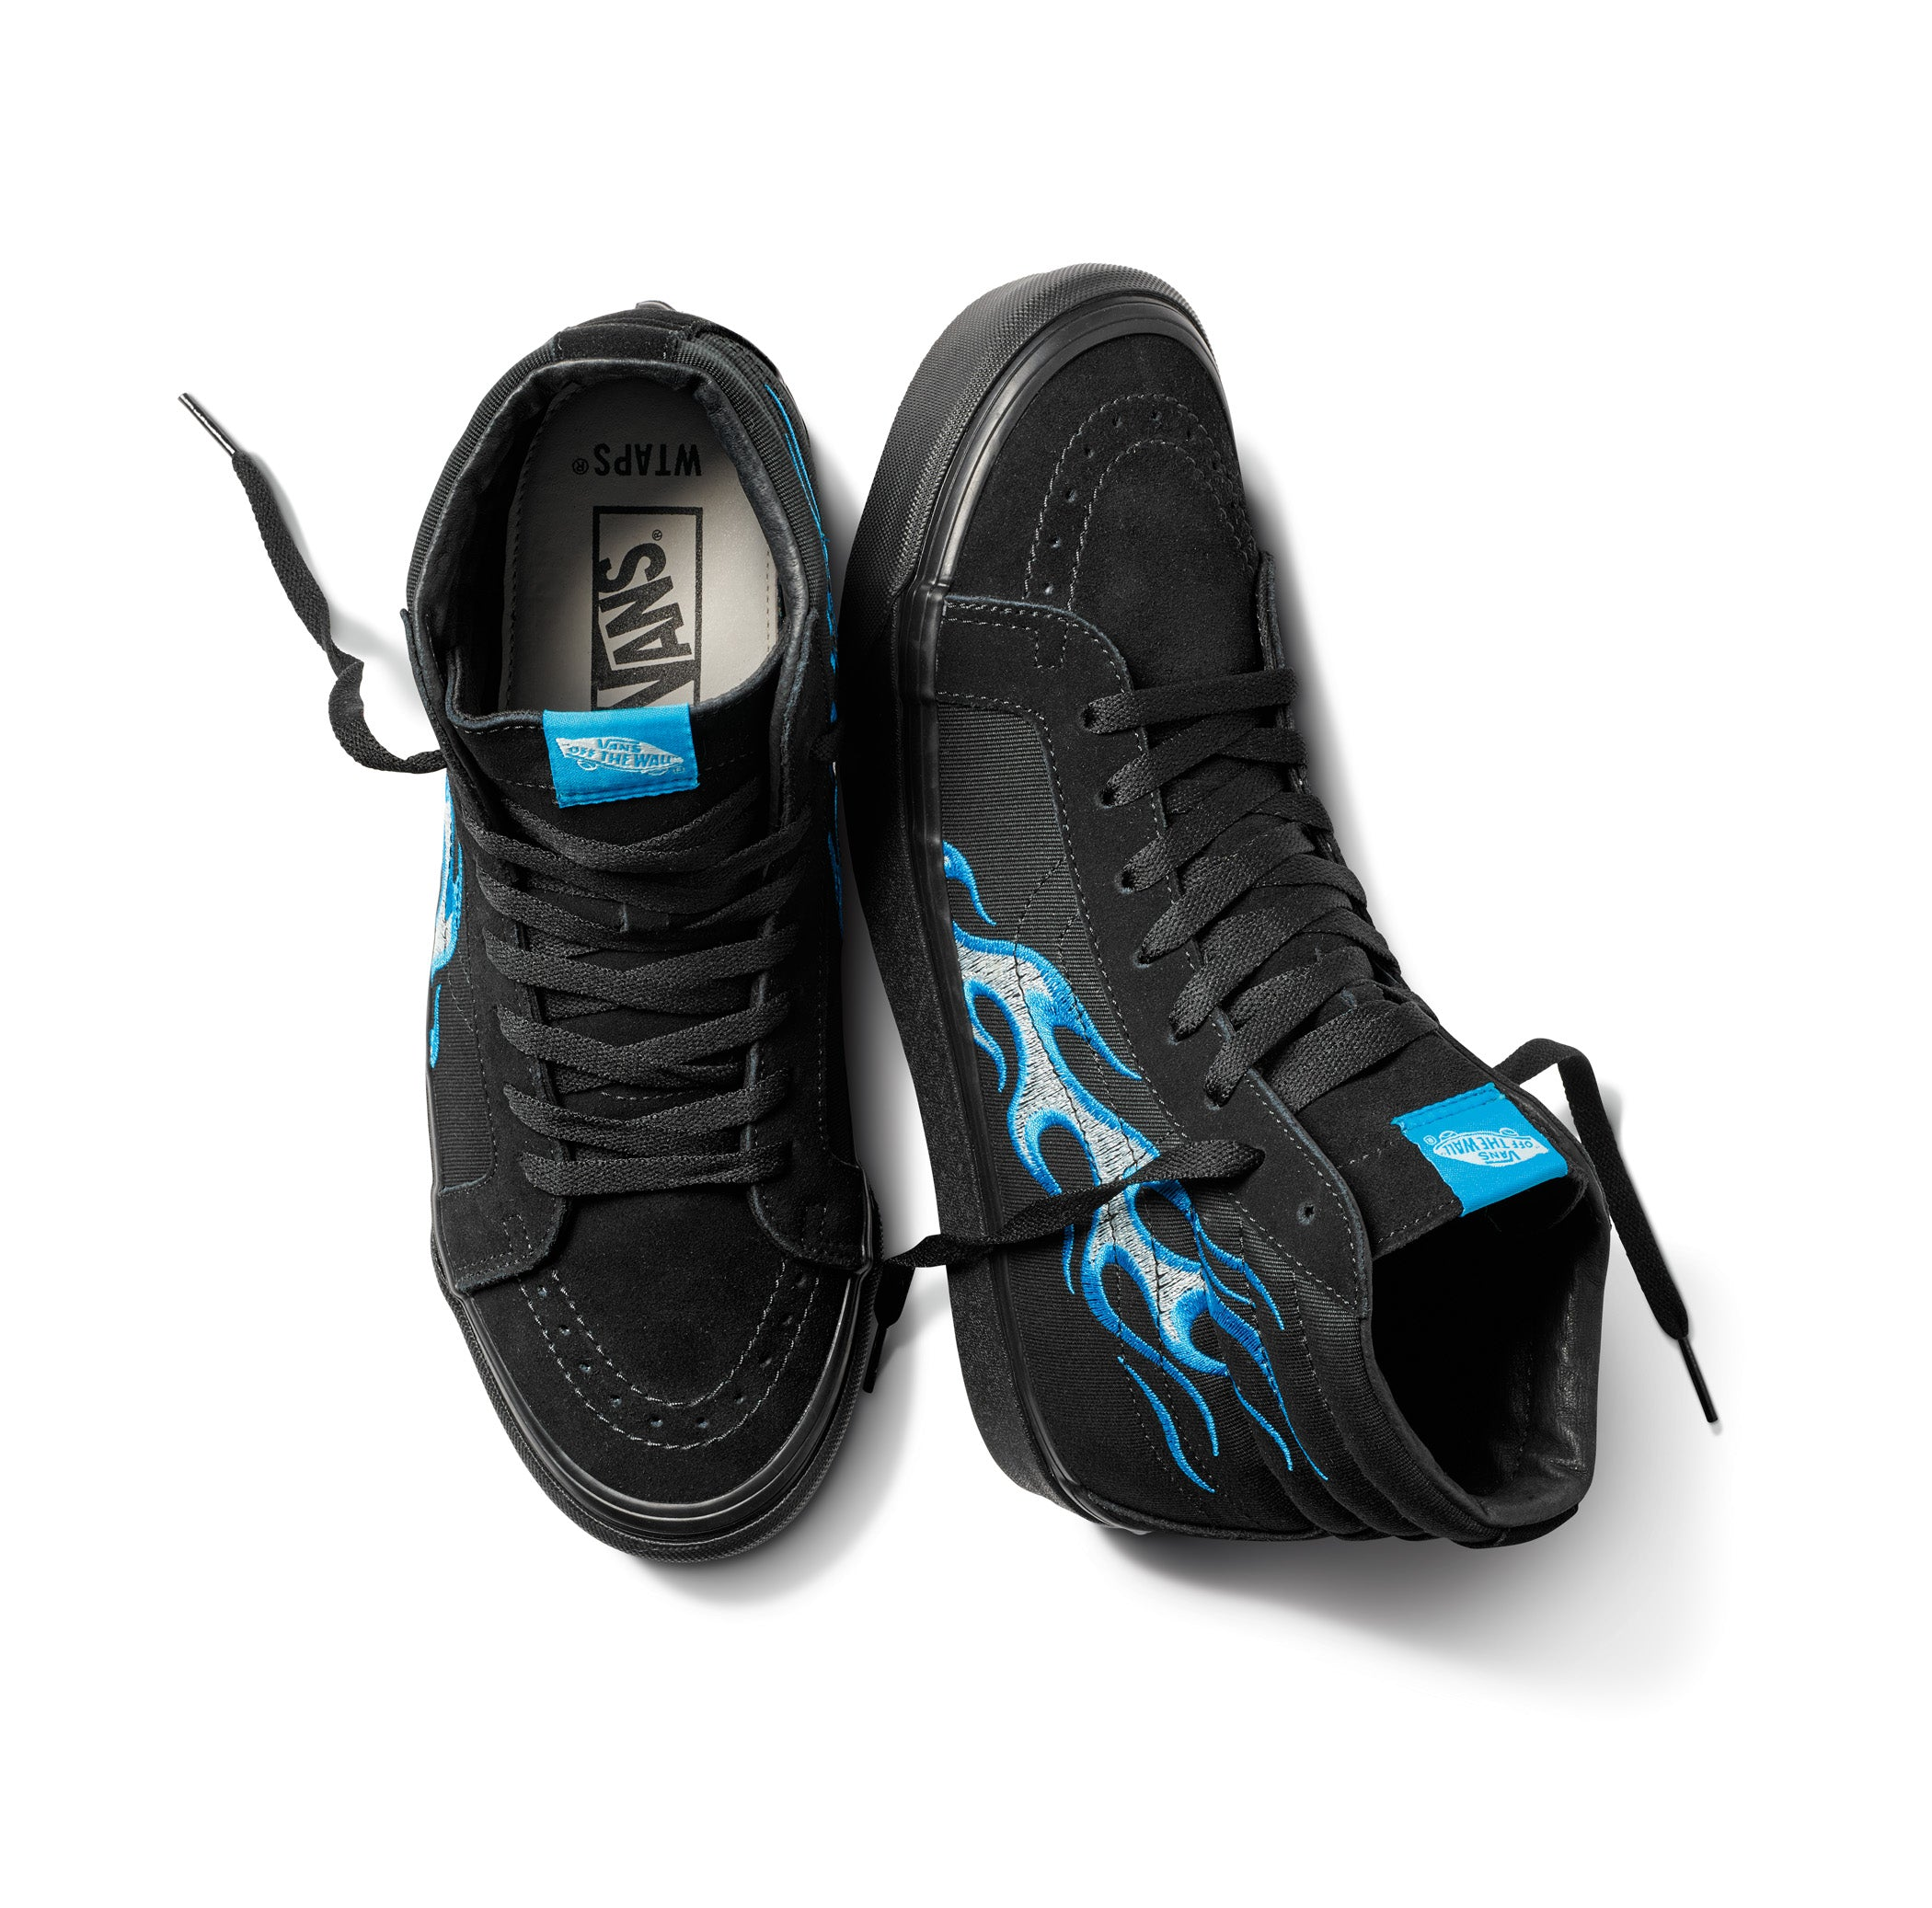 b10e821231 Vans Vault UA OG SK8-Hi LX x WTAPS VN0003T0UA3 (WTAPS) Flame Price  £89.00.  Launch  Friday 27th of July ONLINE  23 00BST